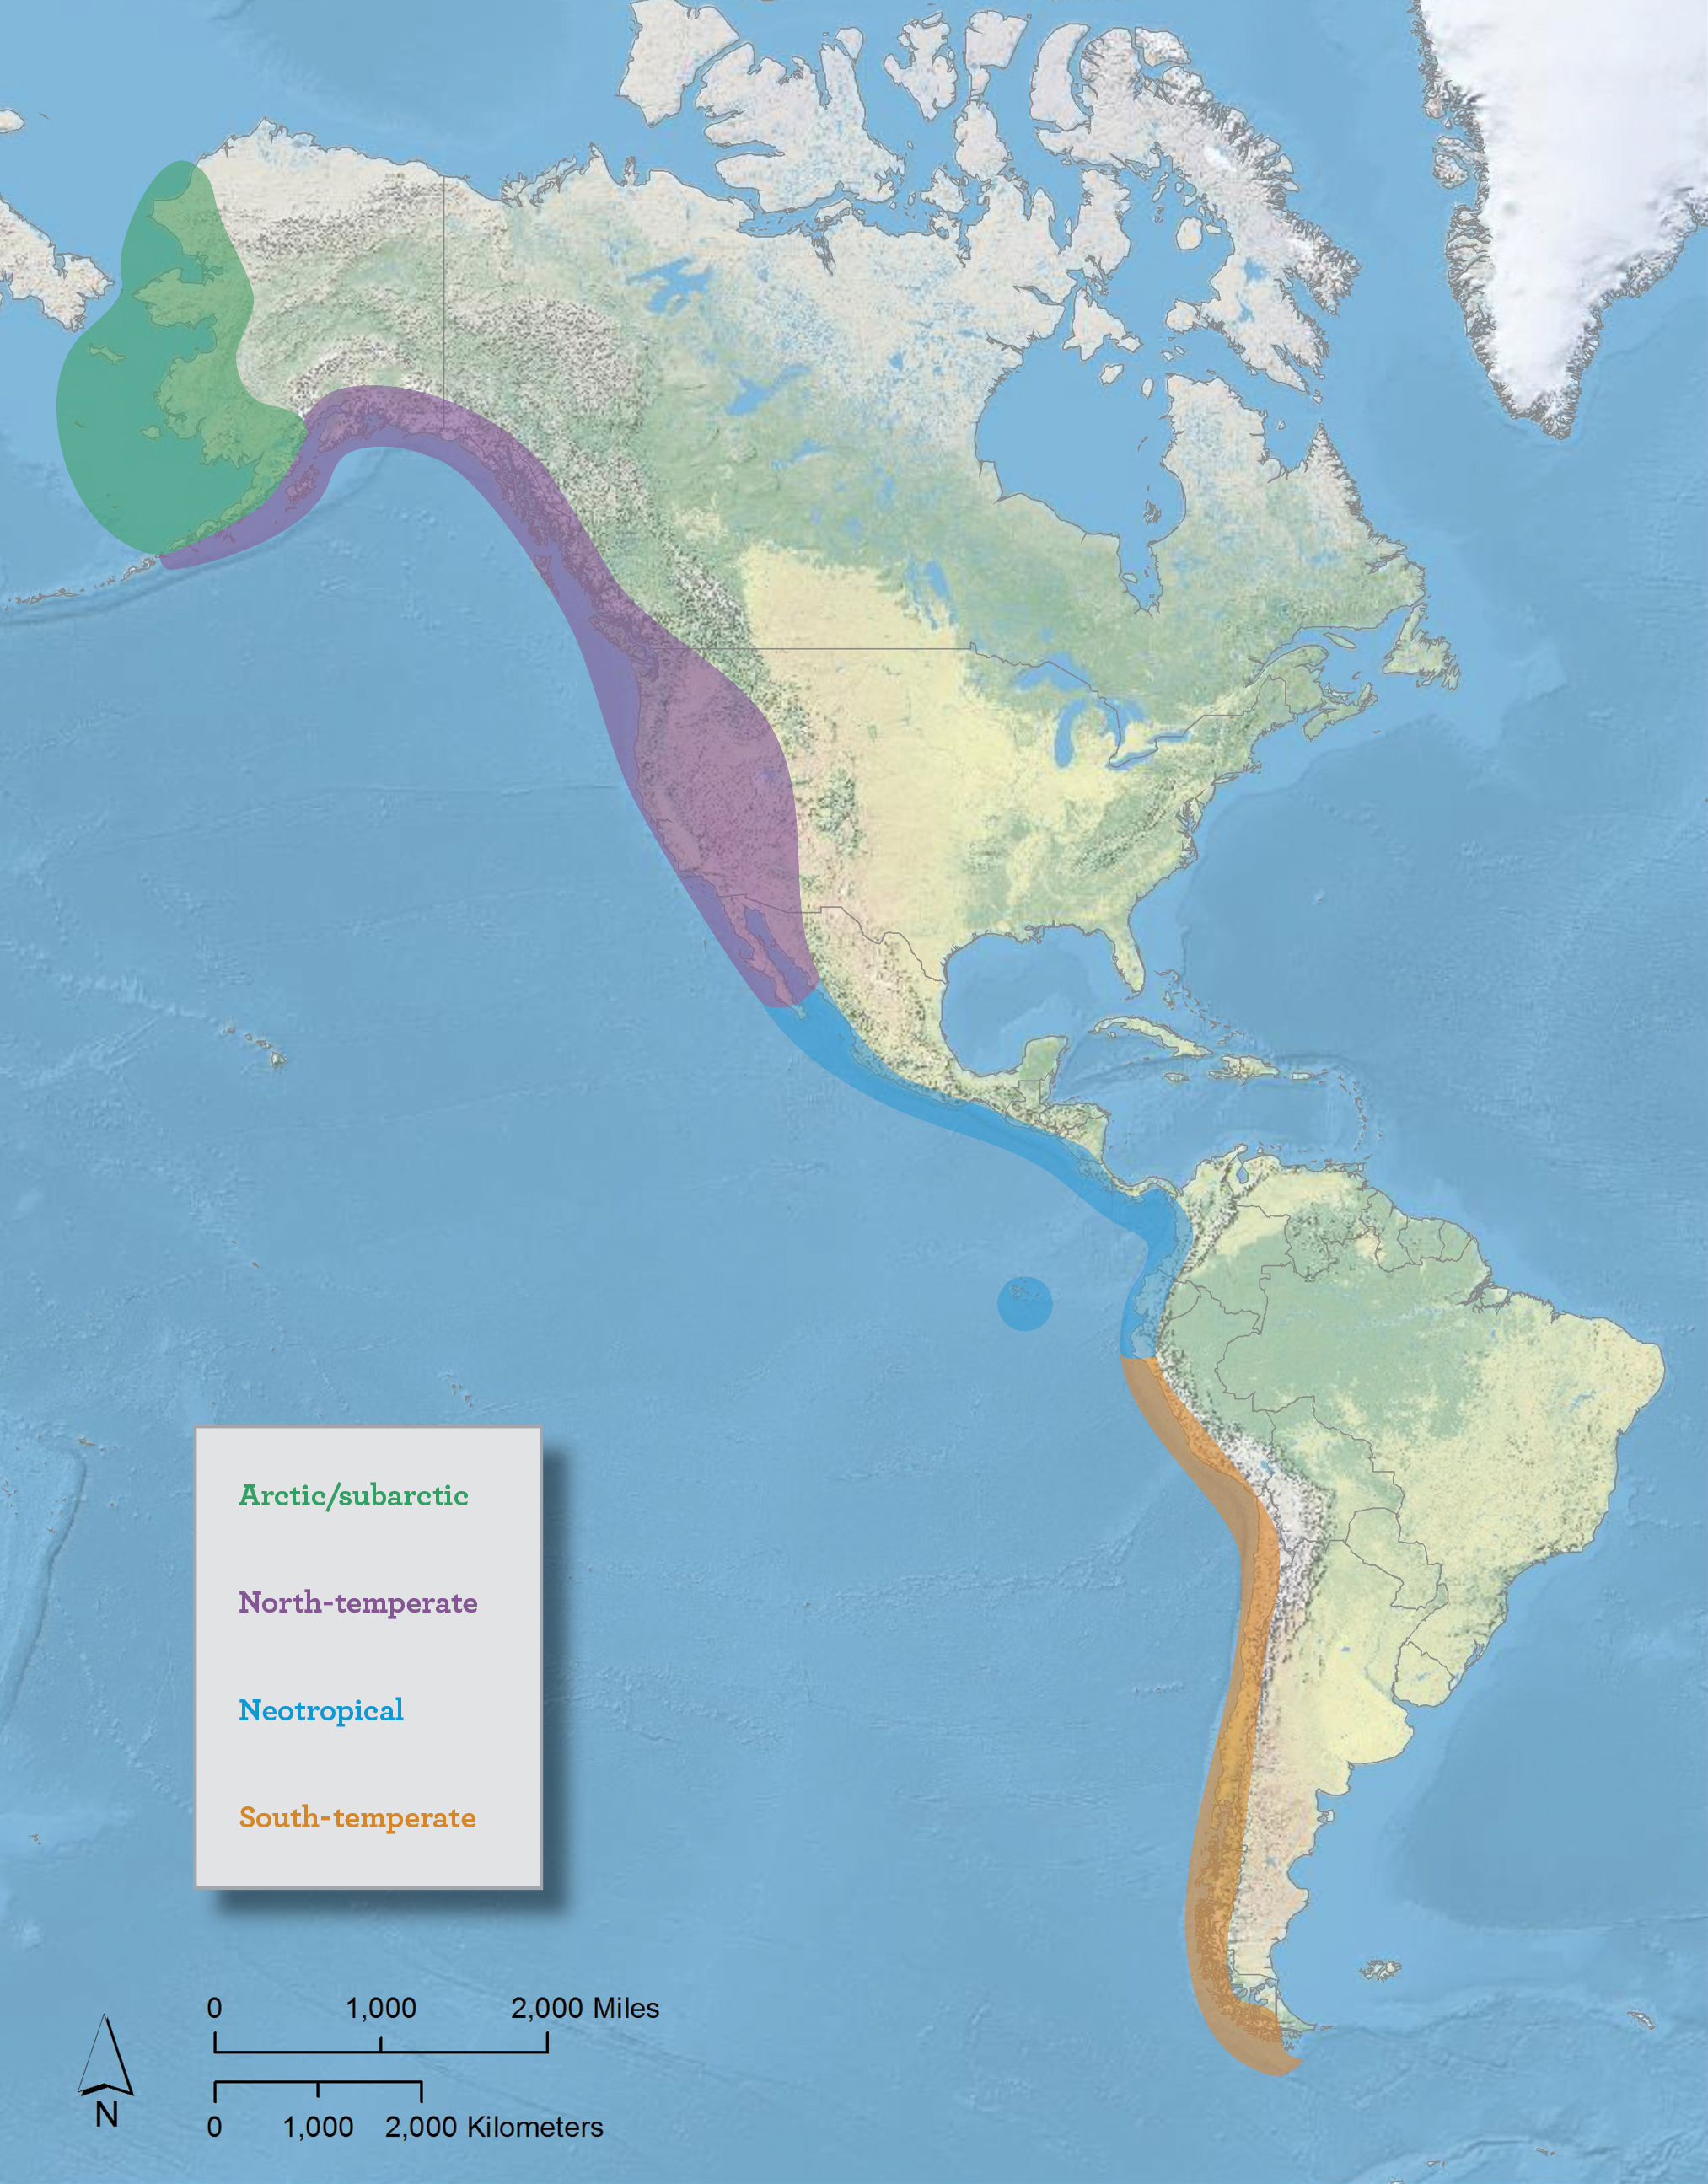 Pacific Americas Shorebird Conservation Strategy project area and focal geographic regions.